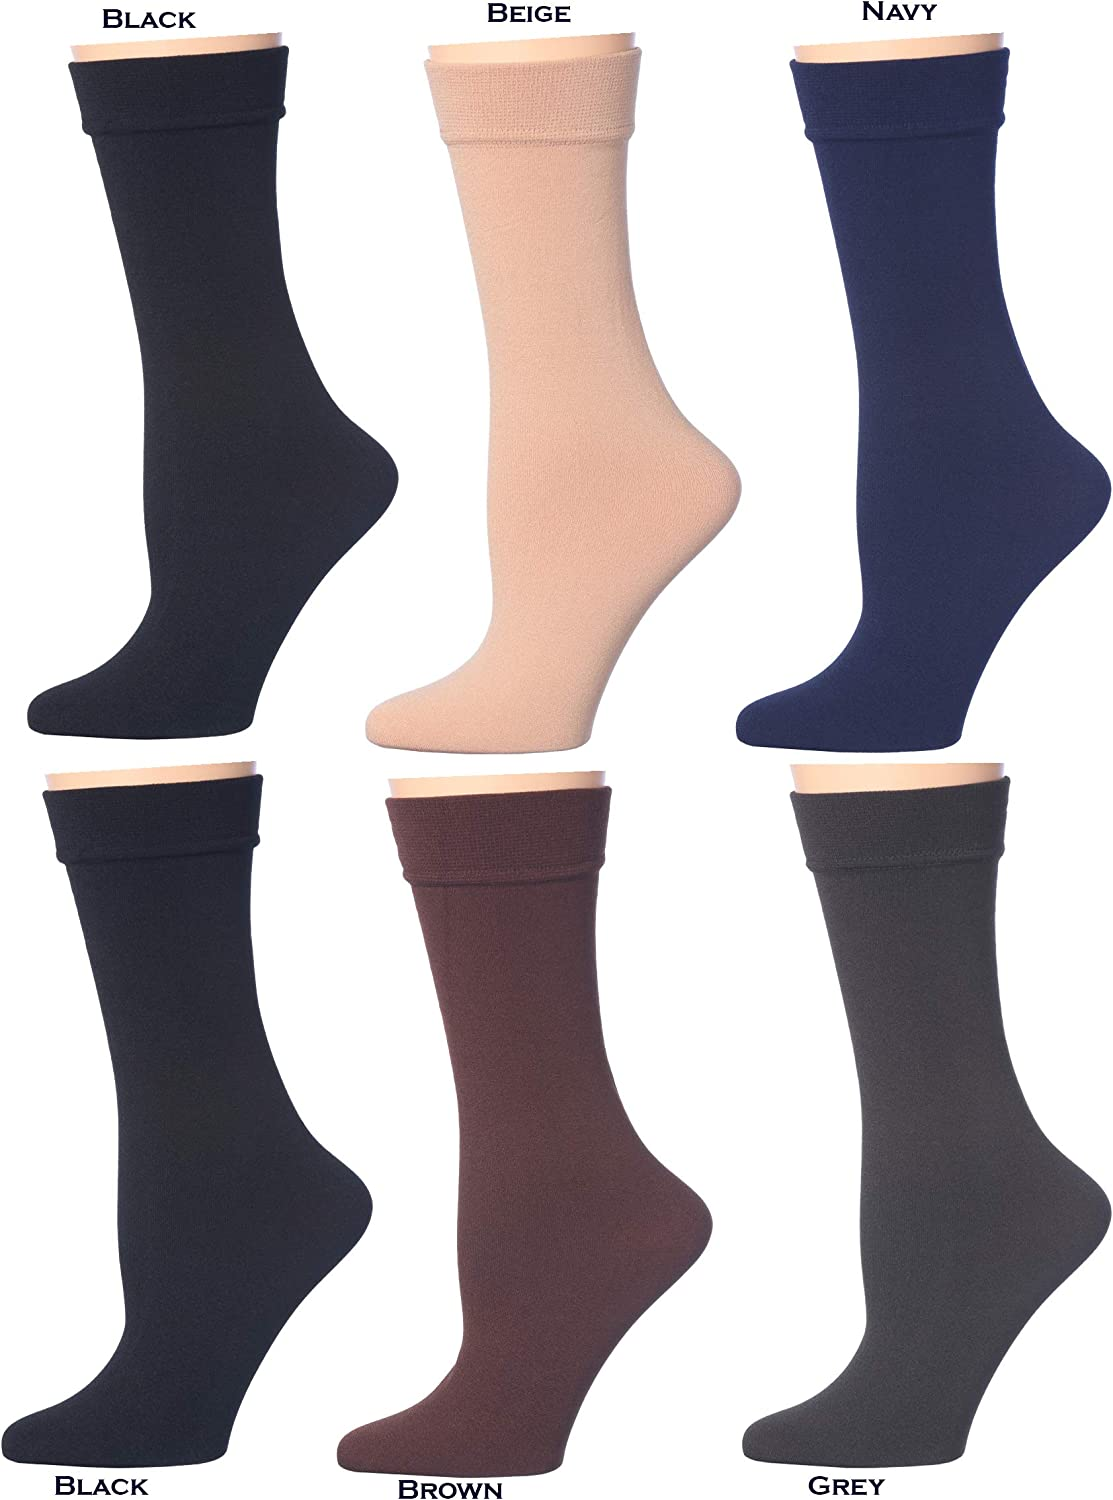 Women's Opaque Plush Fleece Lined Knee High Or Crew Socks (Pack of 4 or 6)